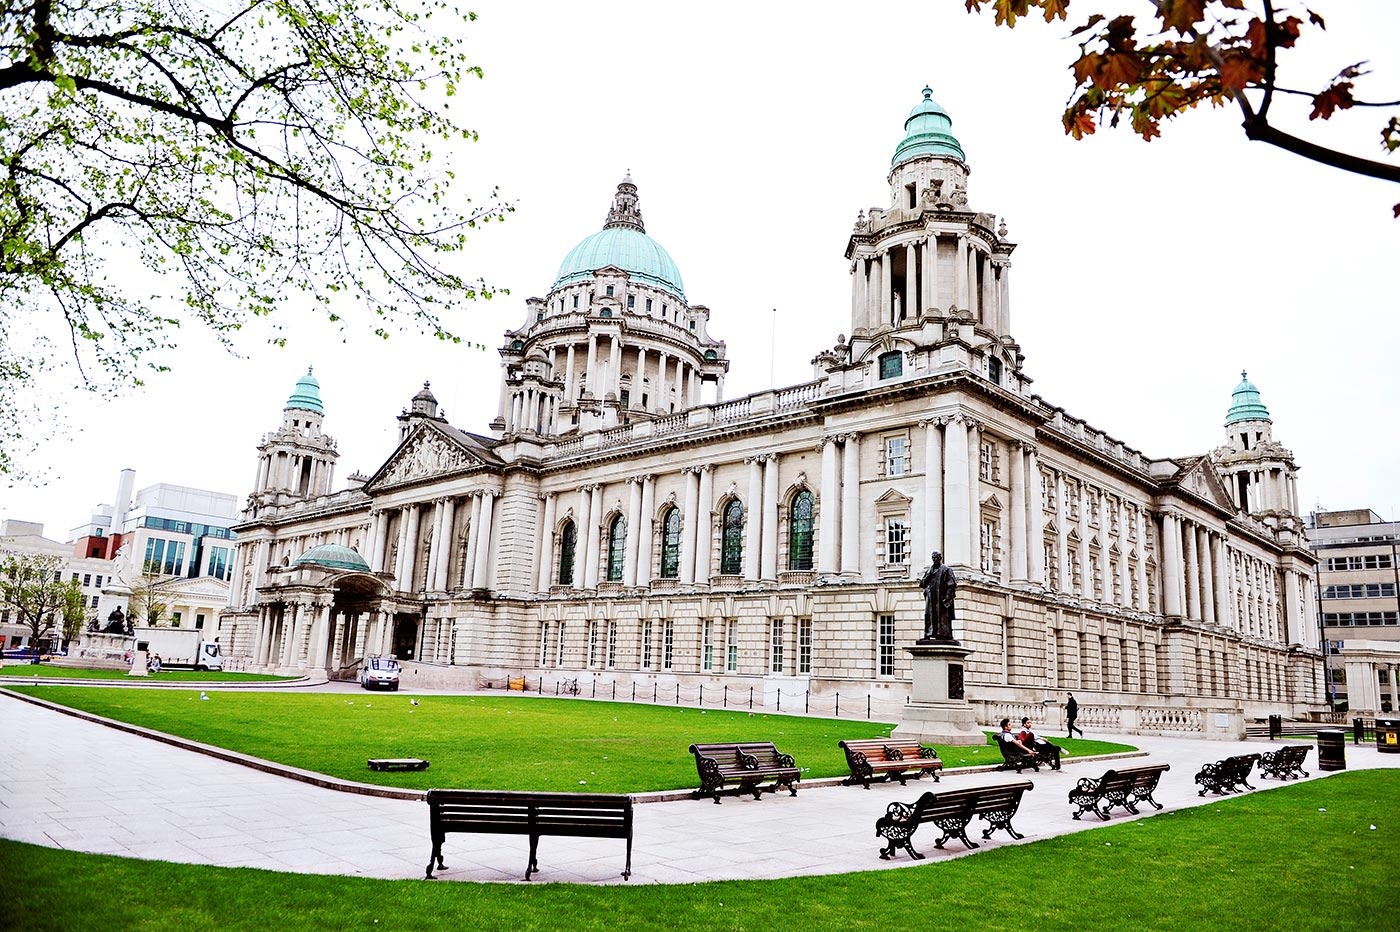 Belfast City Hall is one of the city's must-see landmarks